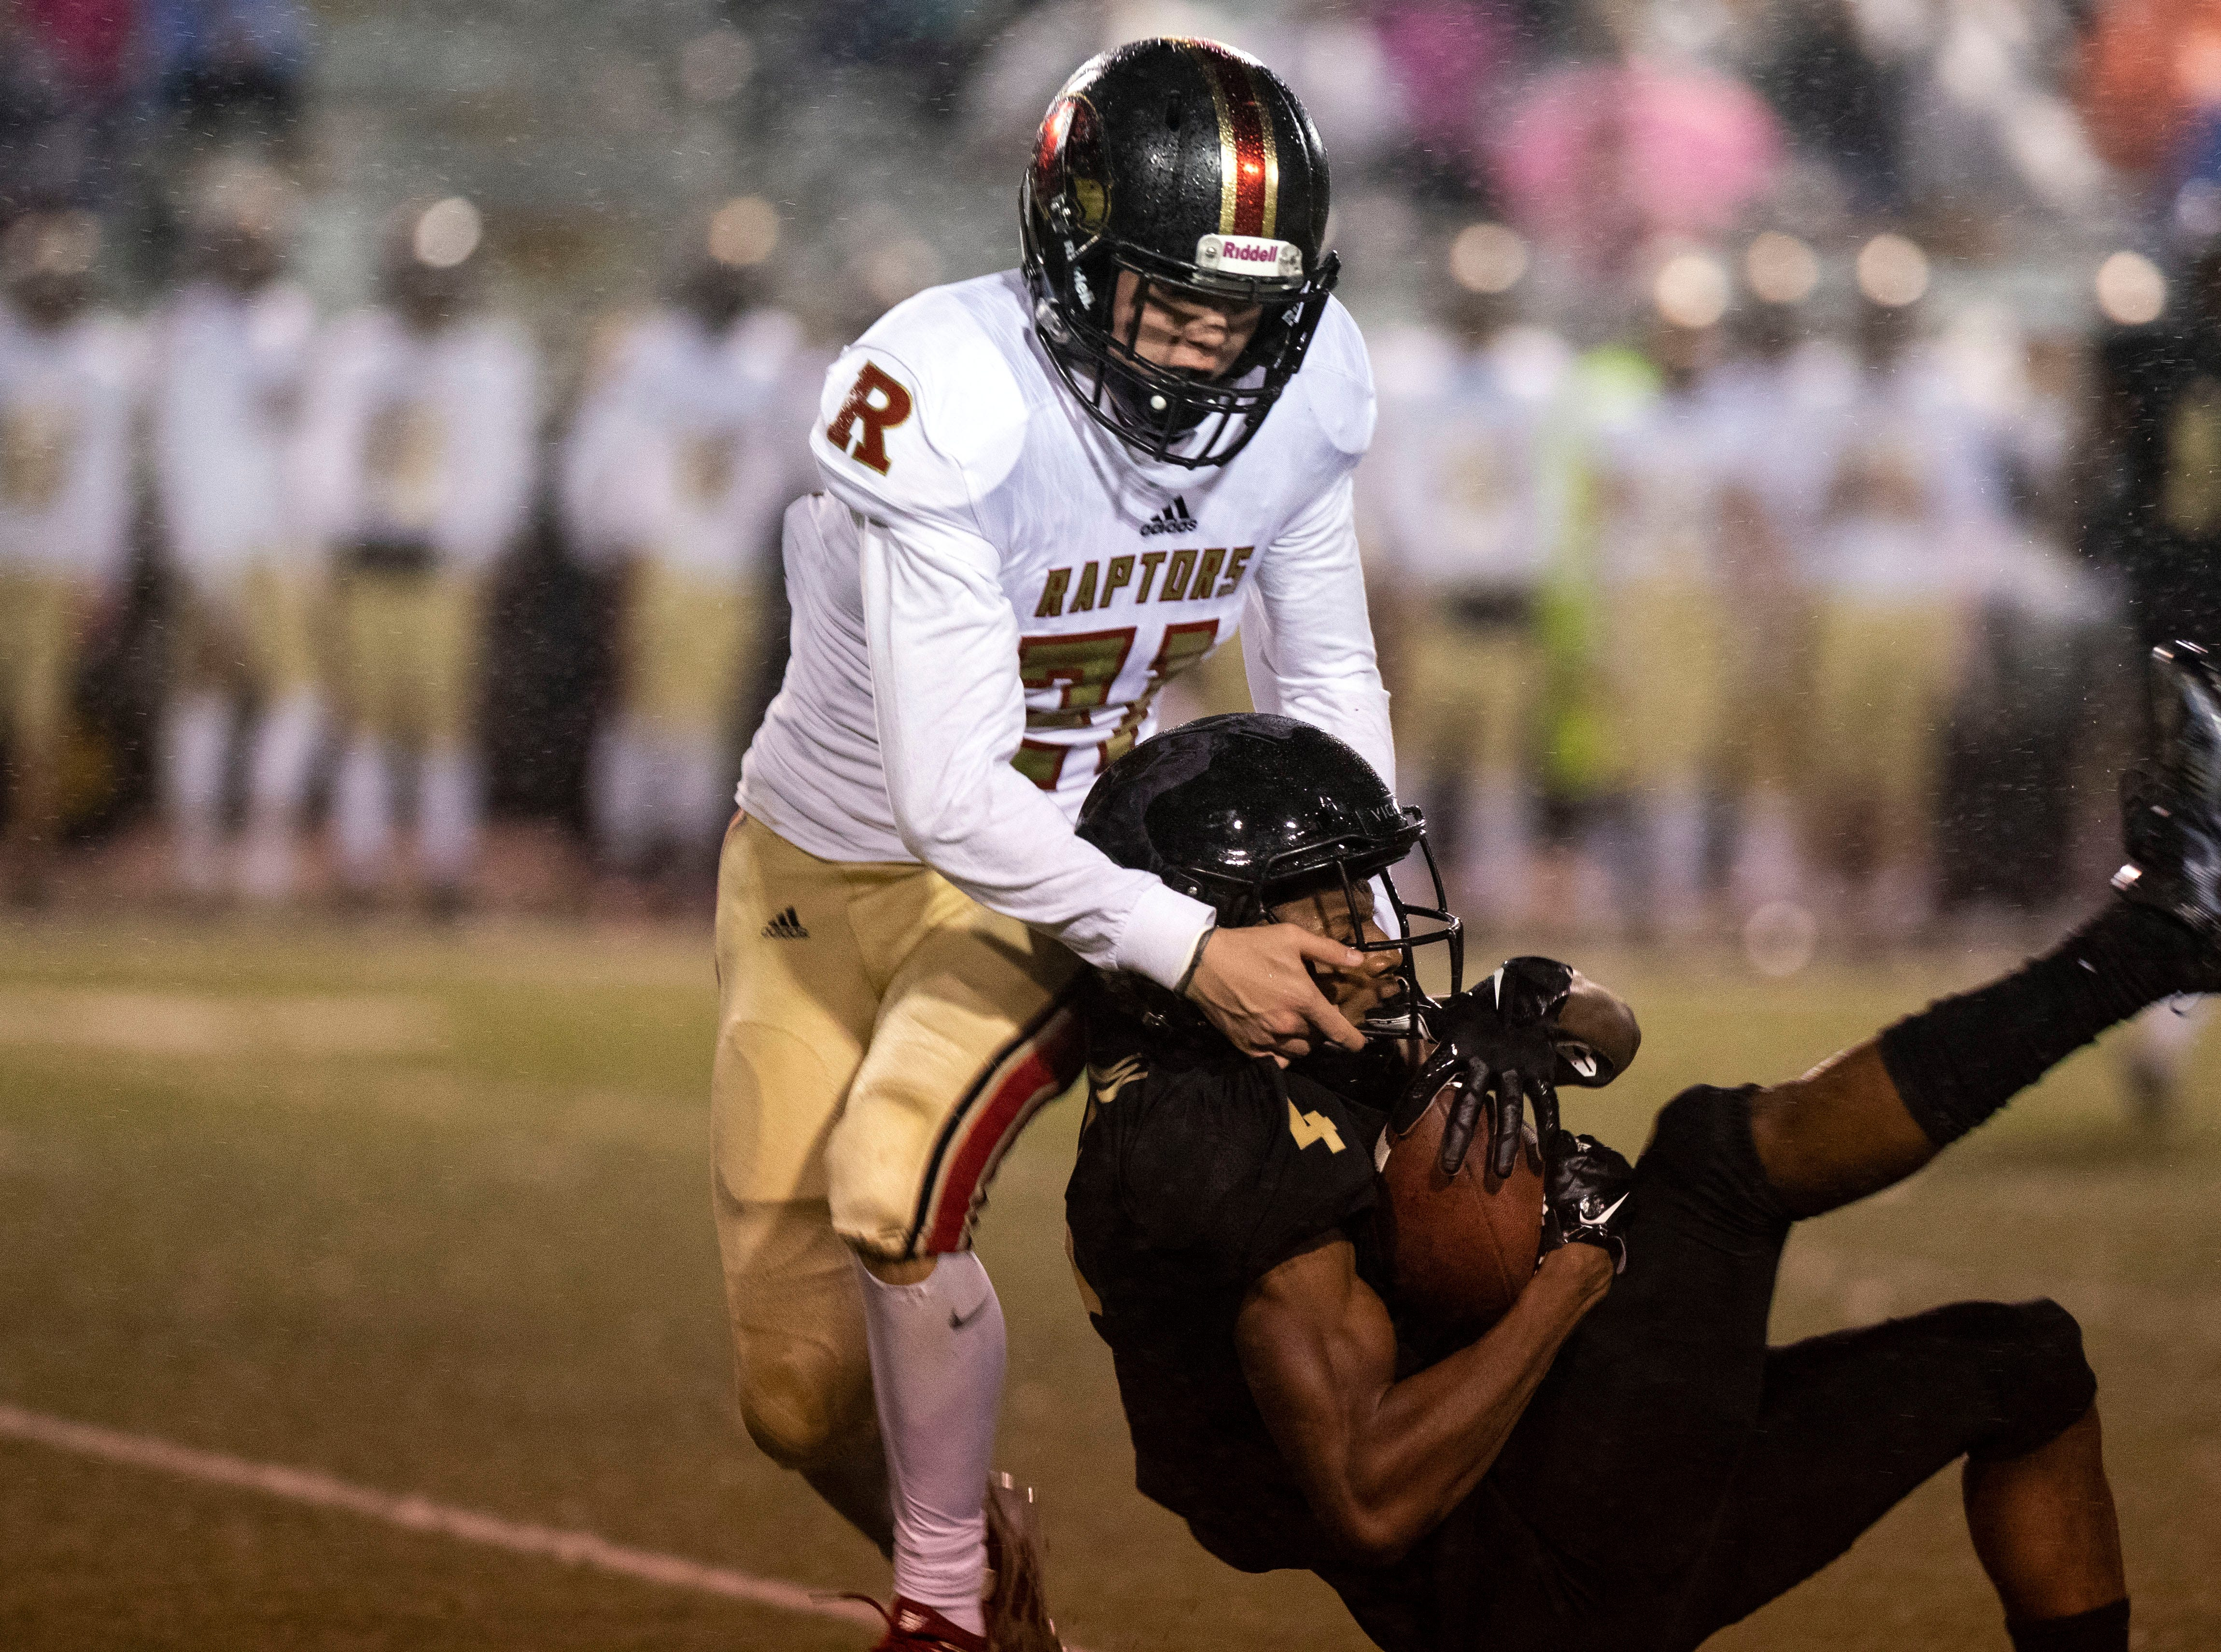 Whitehaven Tigers wide receiver Devin Boddie jr. (4) is tackled by Ravenwood Raptors cornerback Garrett Moorman (31) during the first half of a playoff football game in Memphis Tenn.